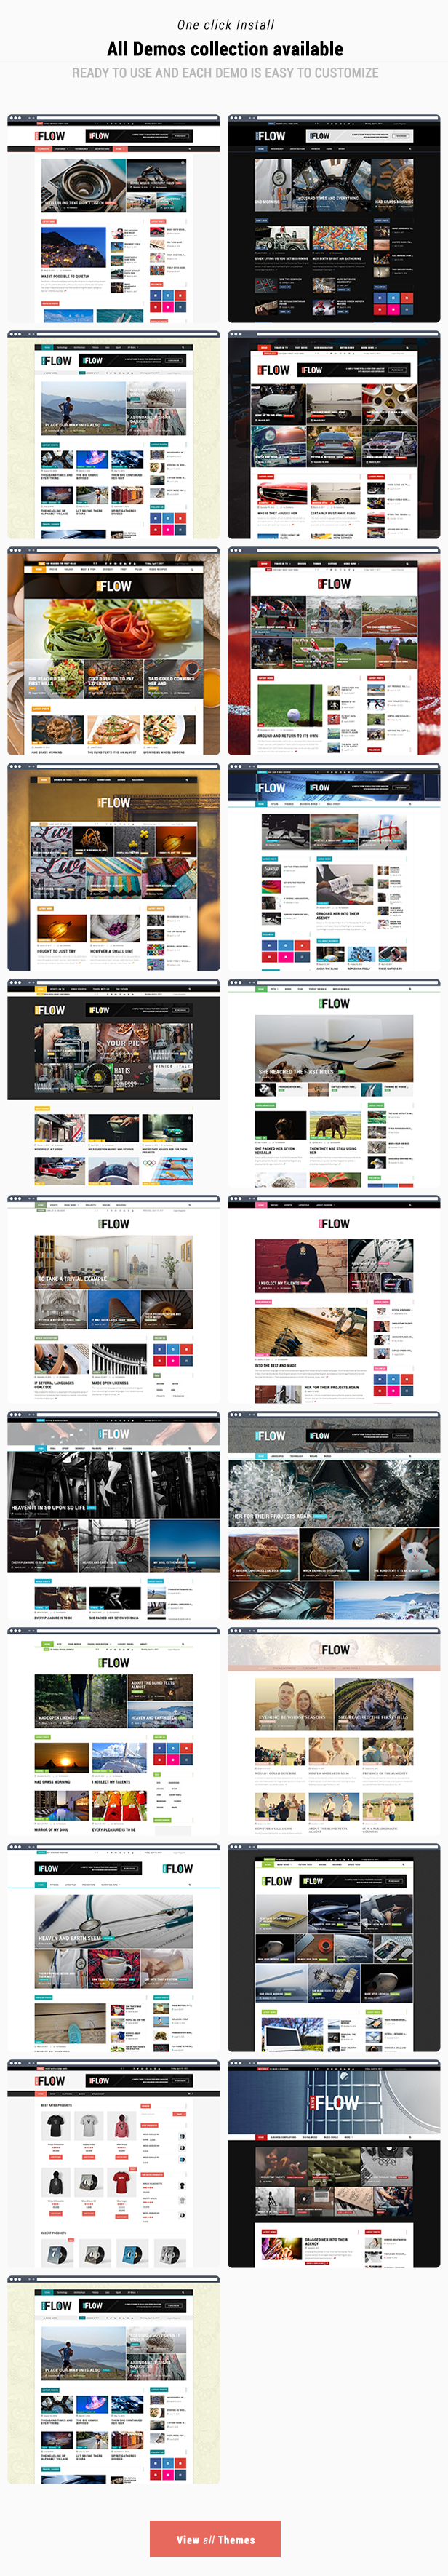 Flow News - Magazine and Blog WordPress Theme - 3